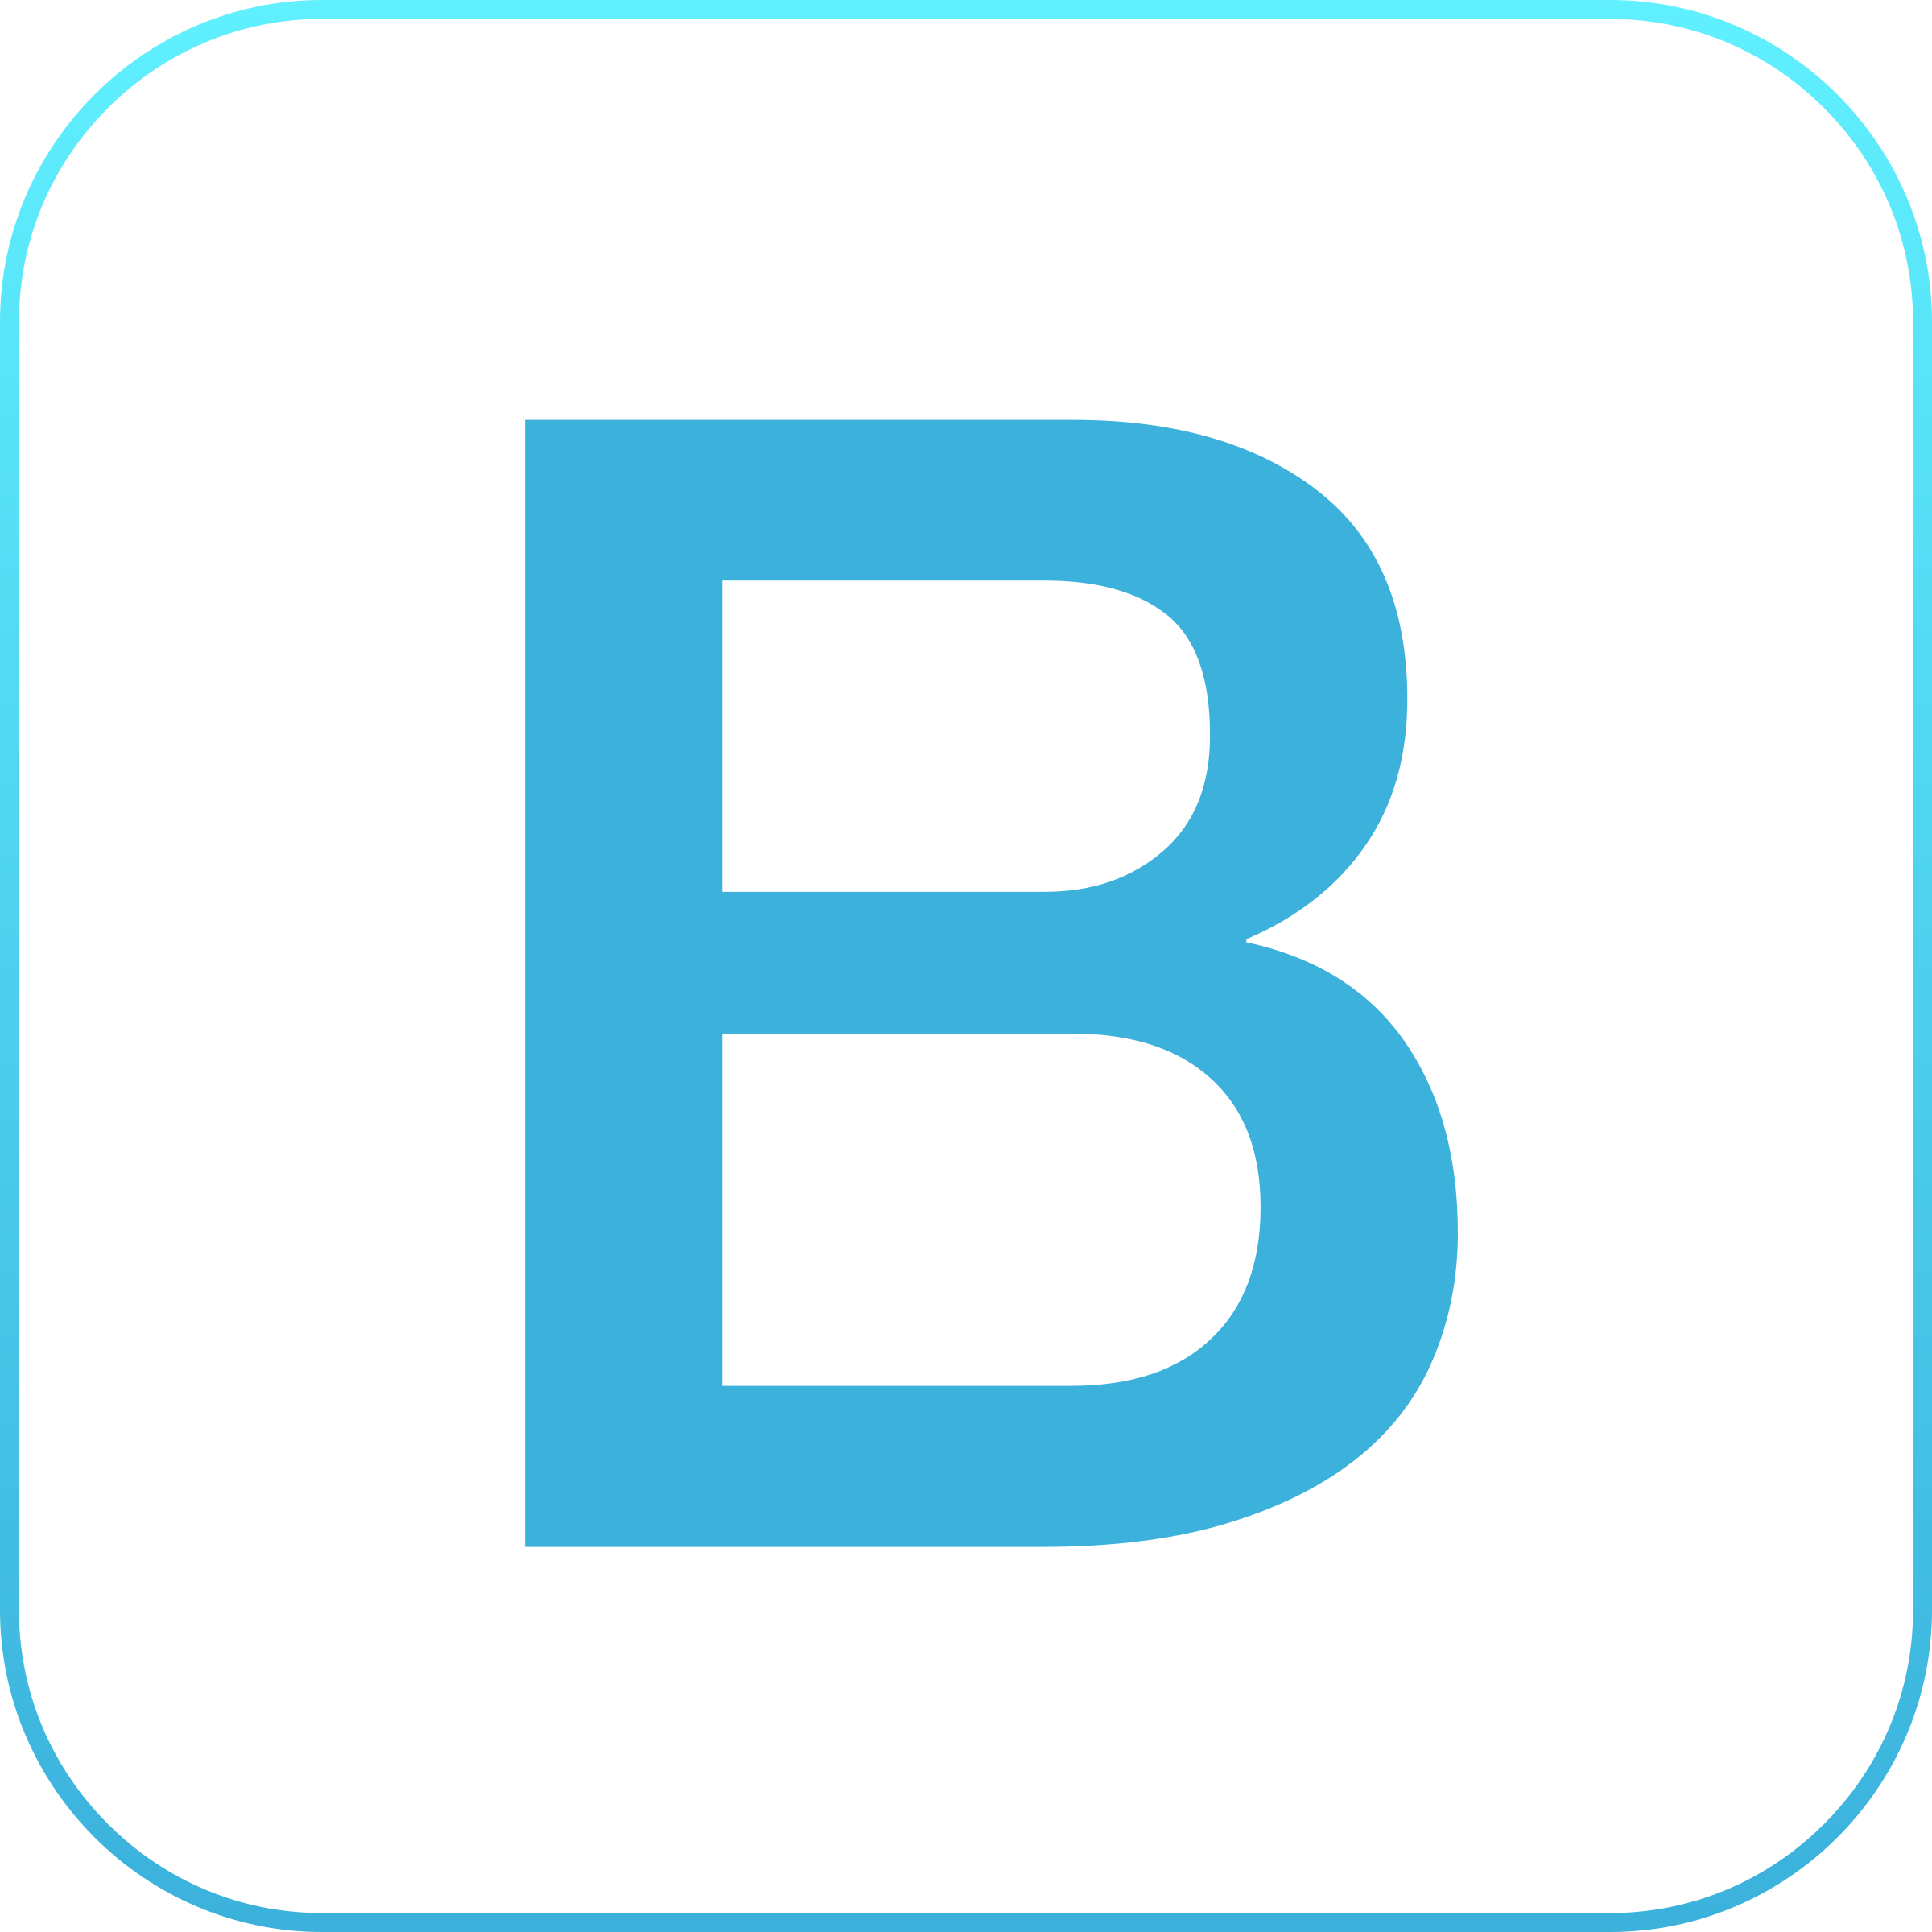 Bootstrap svg. Icon logo png transparent